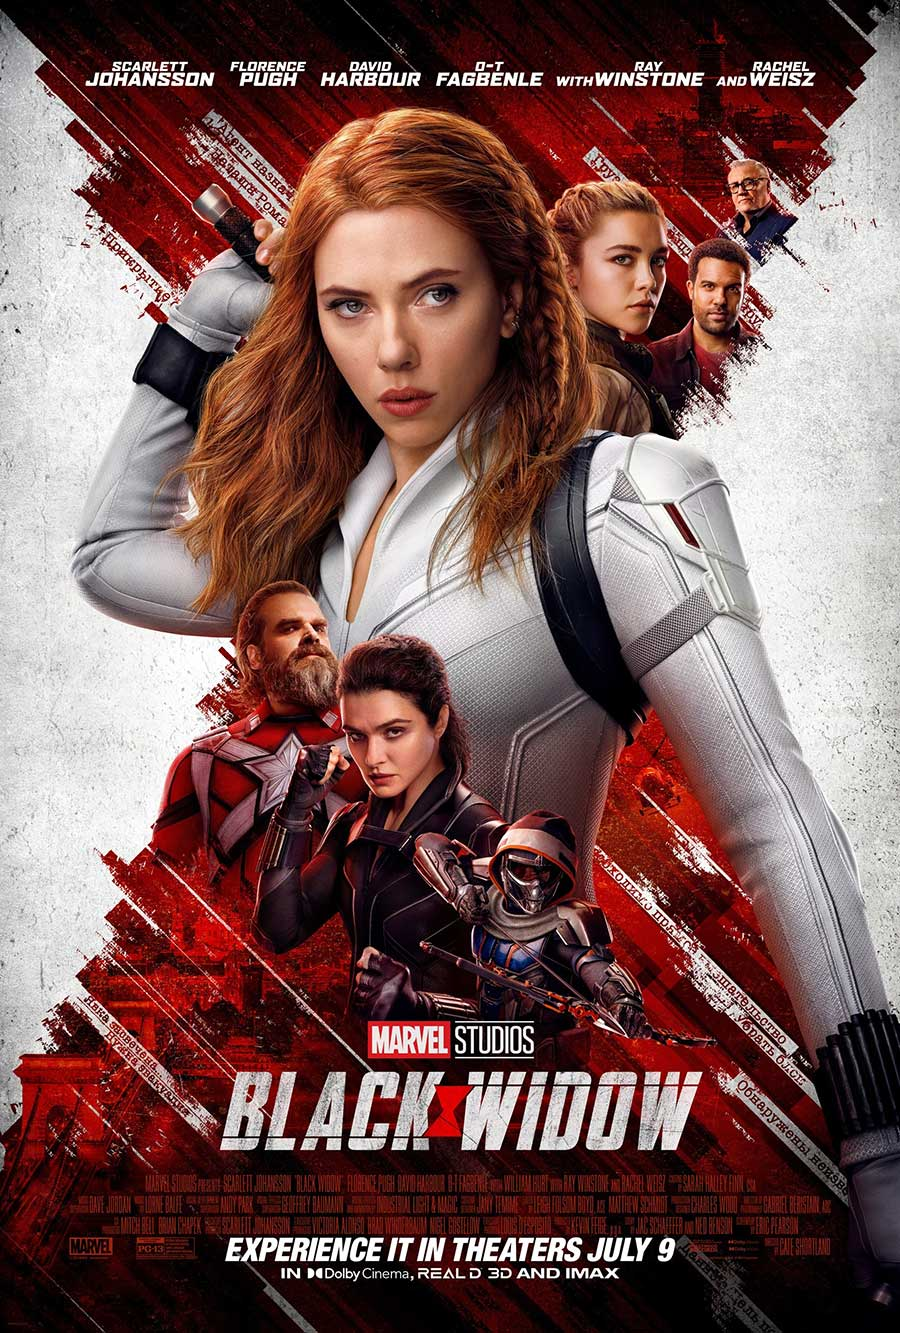 Poster for Black Widow